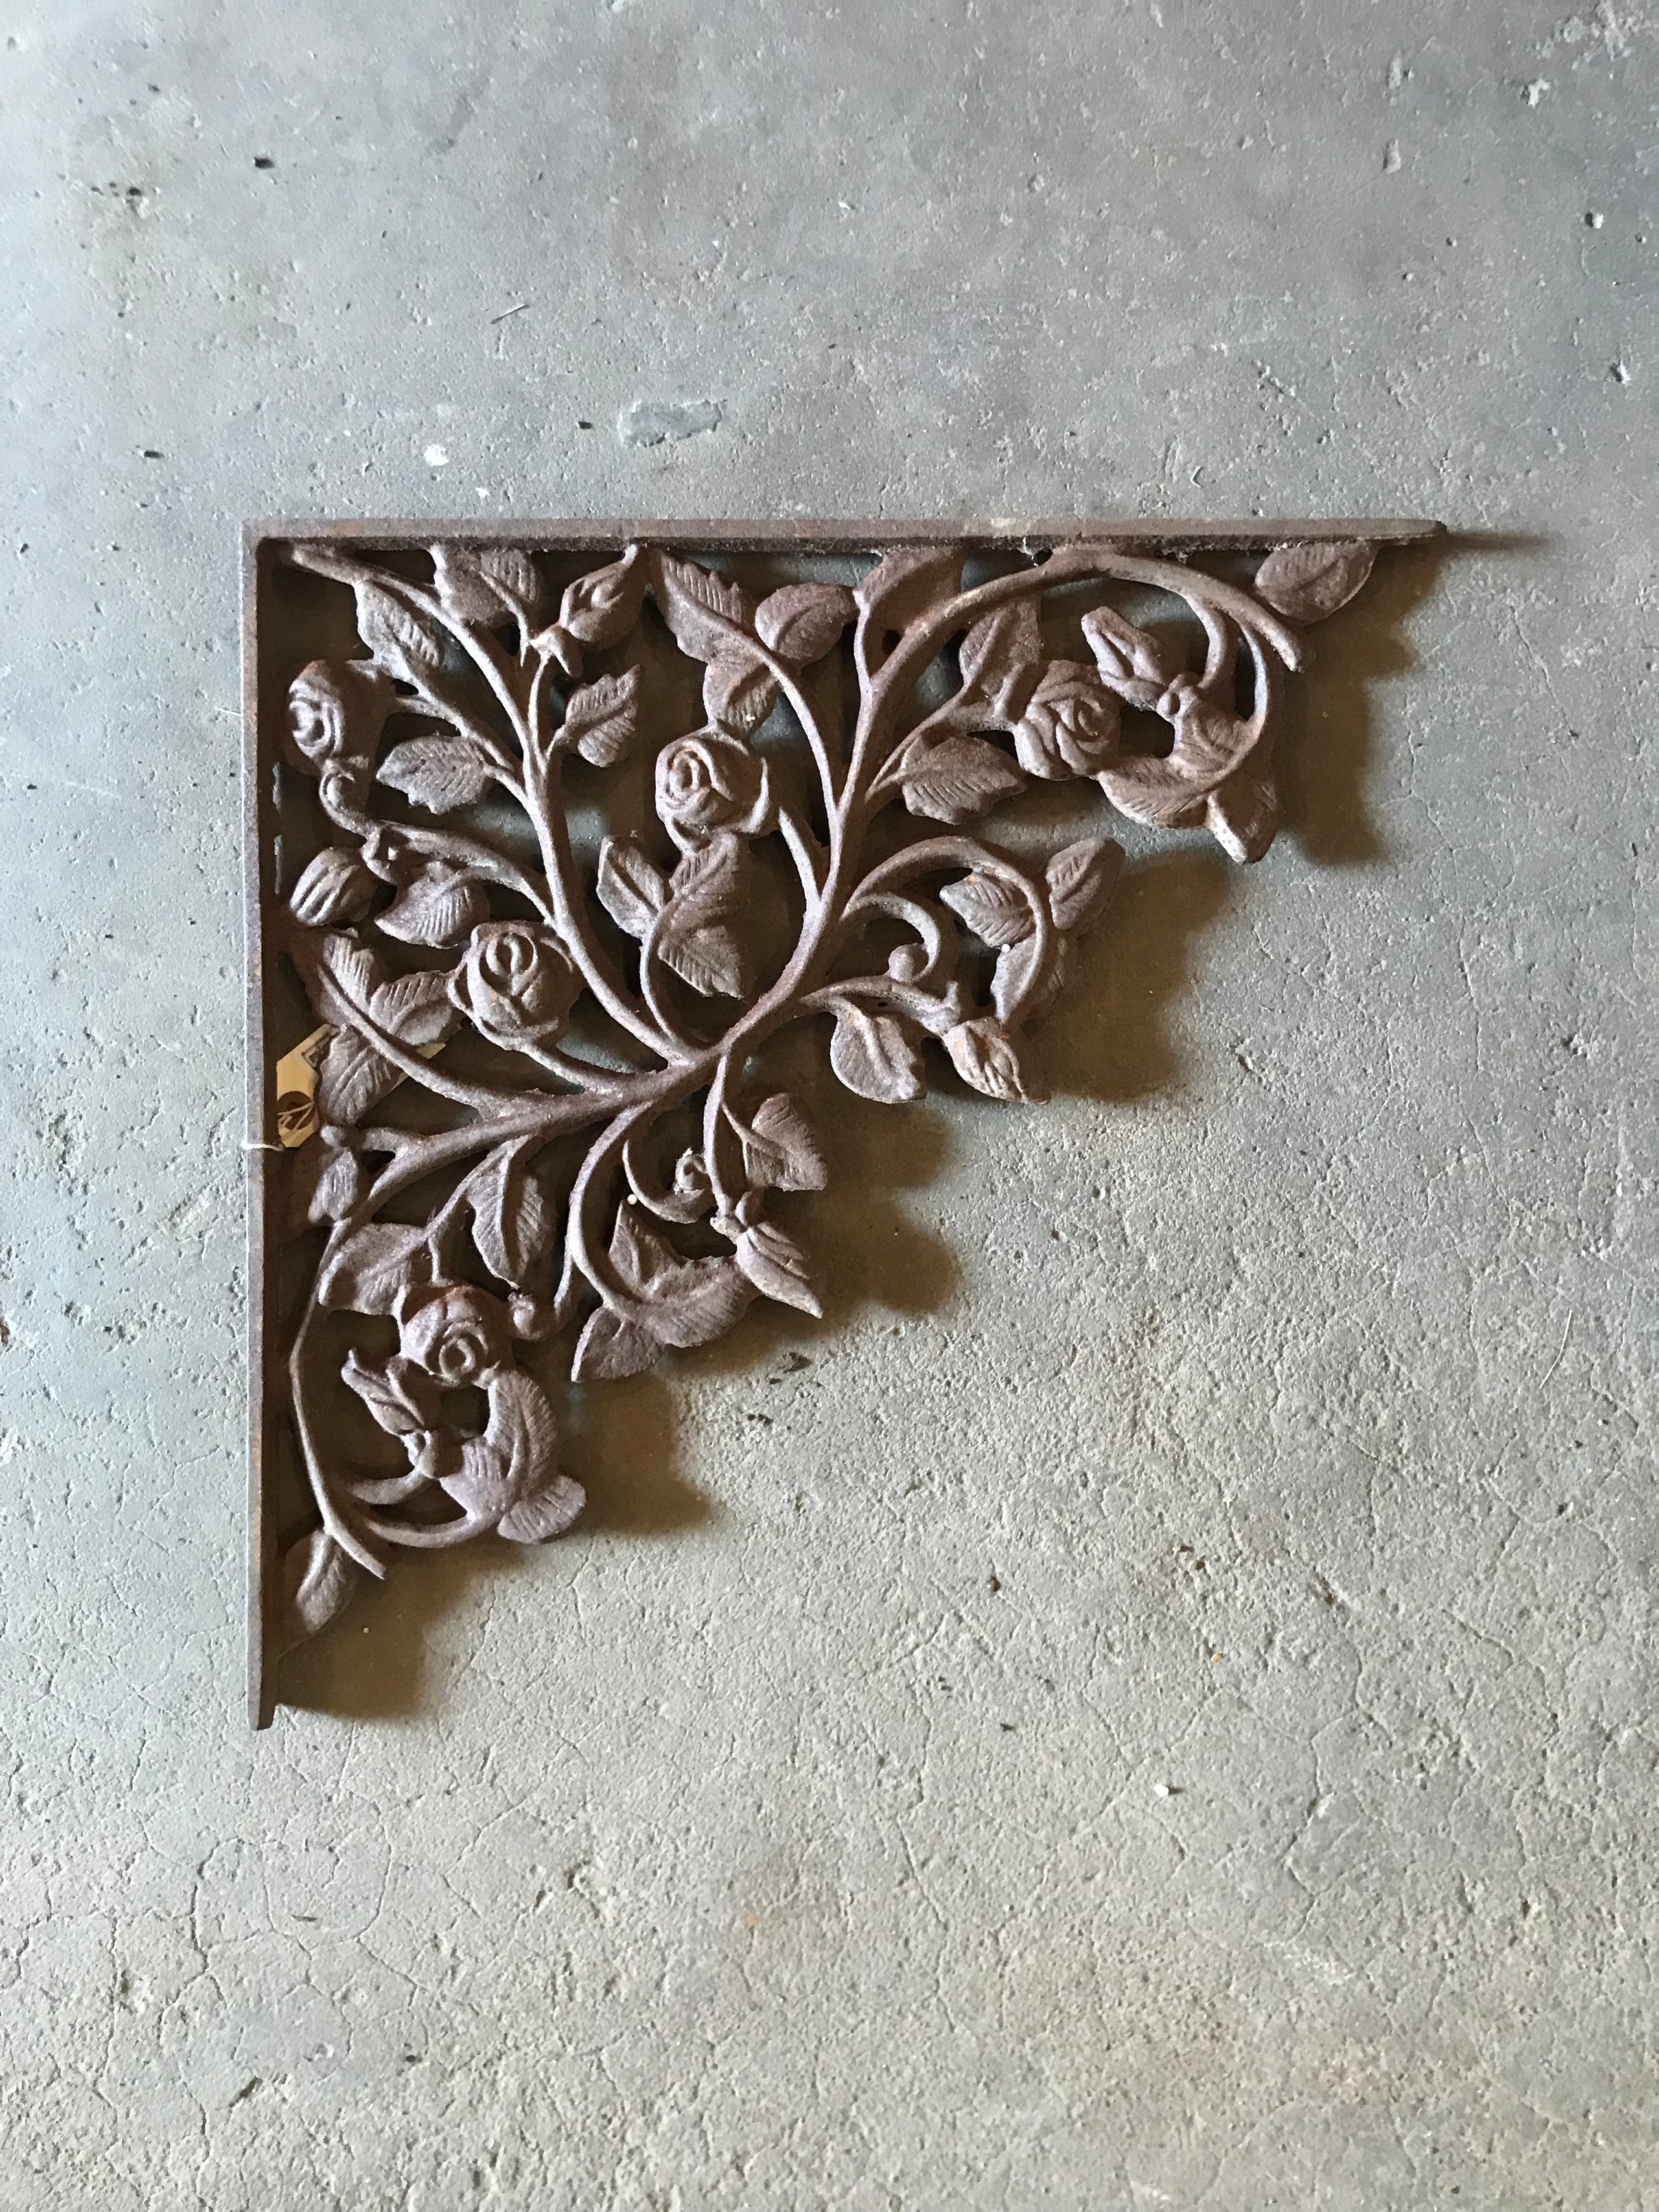 cast iron corner bracket with roses on the vine.